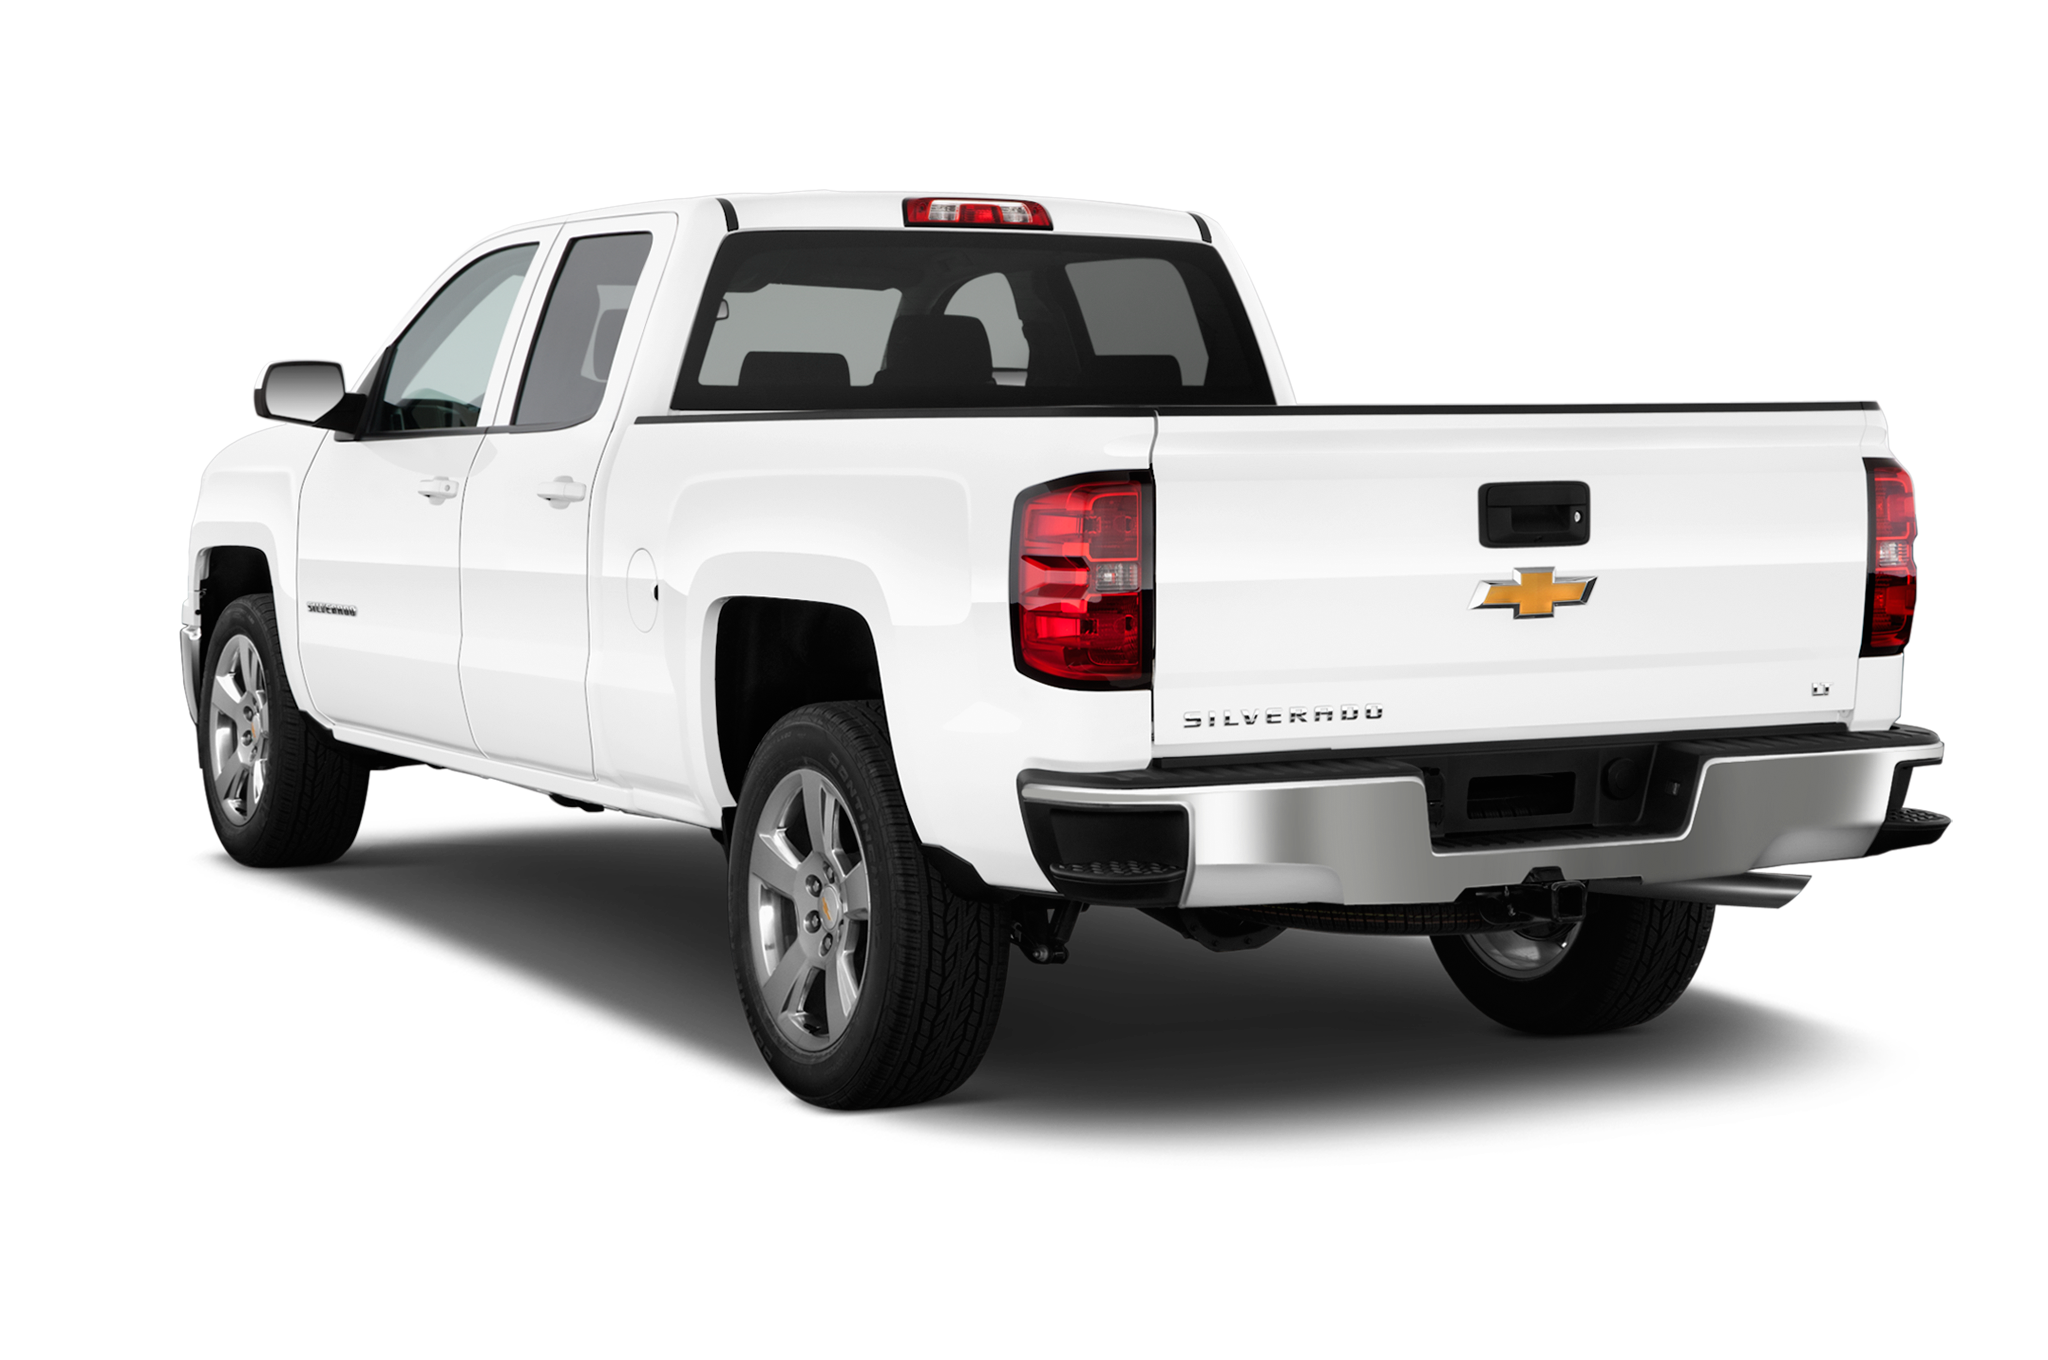 Silverado drawing low truck. Chevrolet gmc sierra